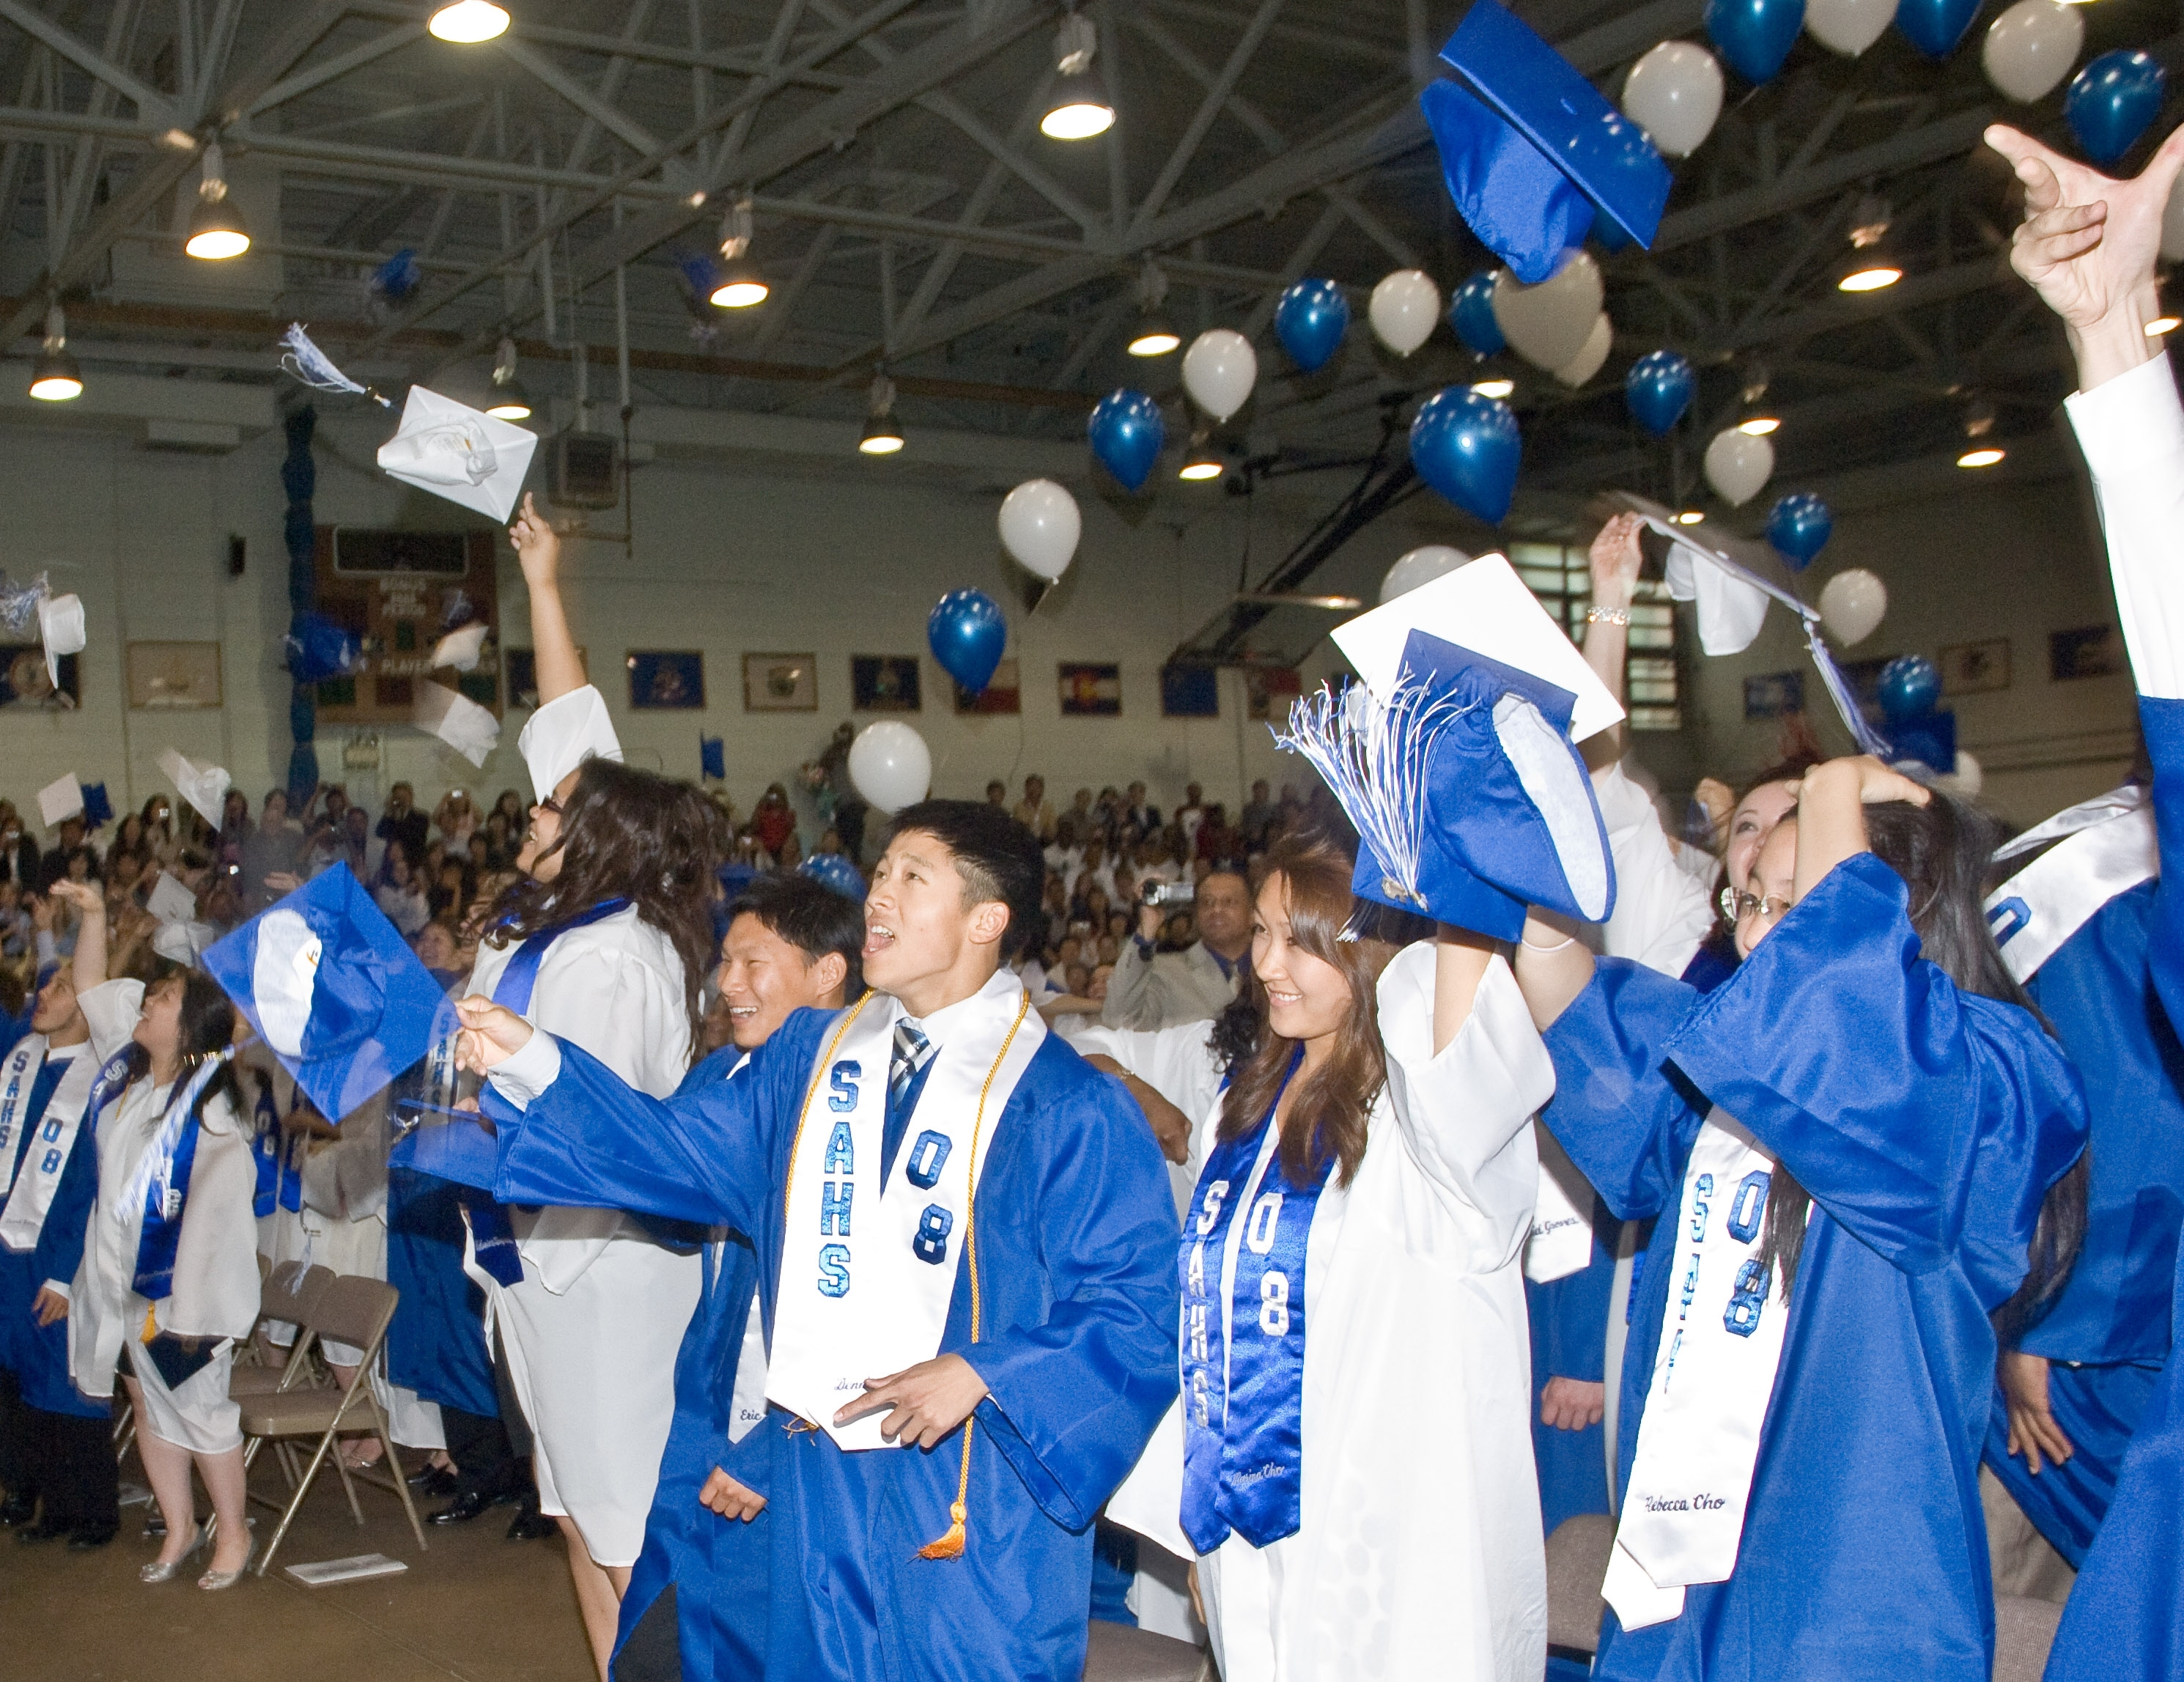 Seoulamericanhighgraduation